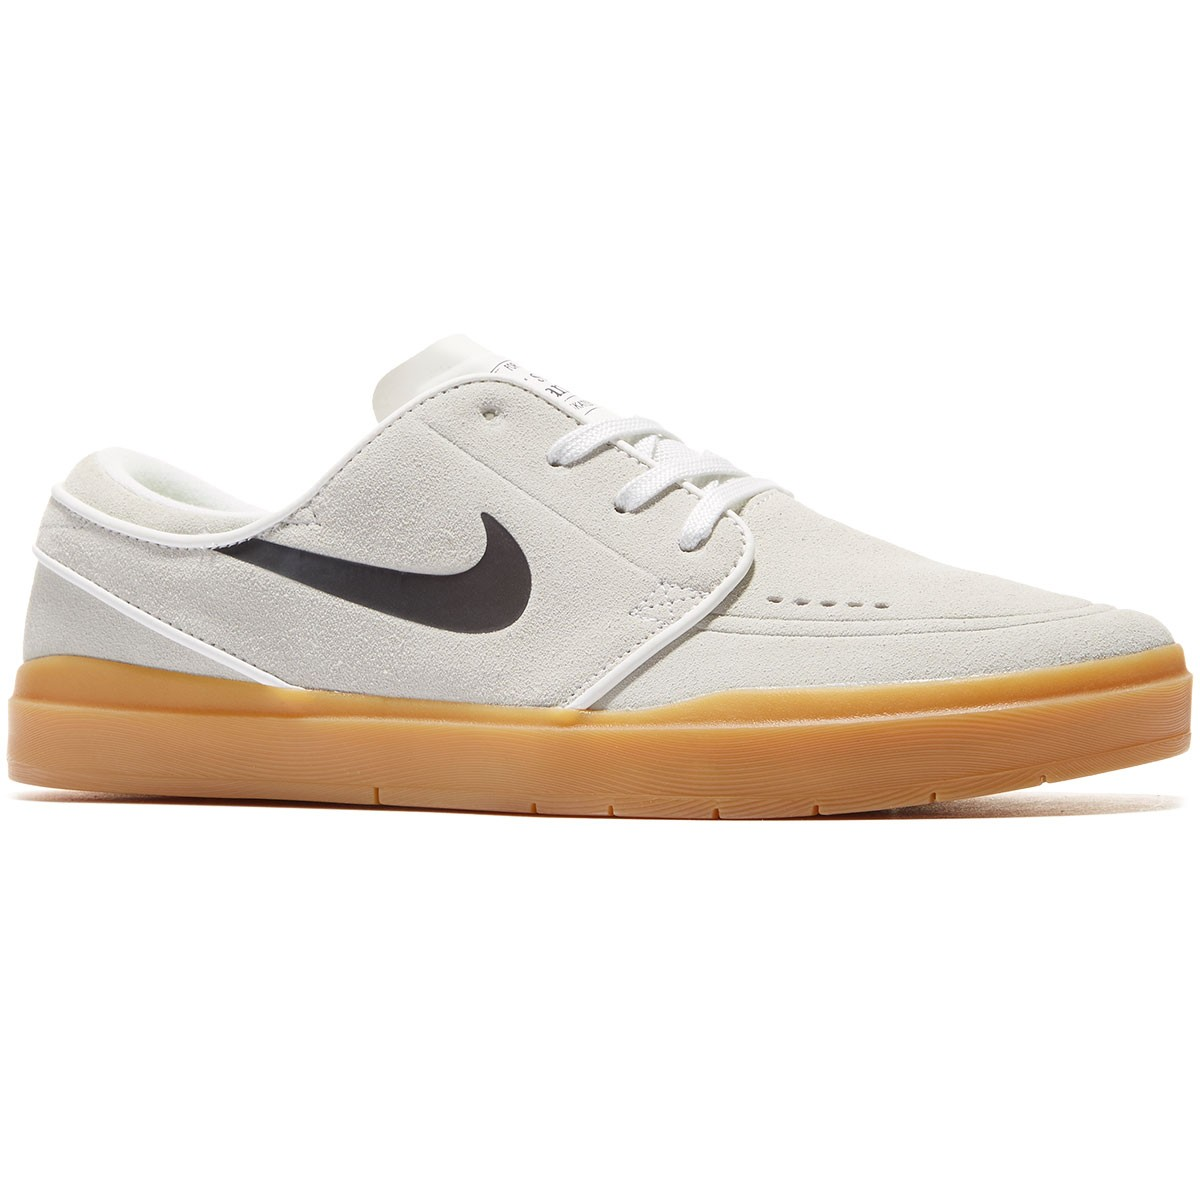 Nike SB Stefan Janoski Hyperfeel Shoes - White/Gum/Black - 8.0